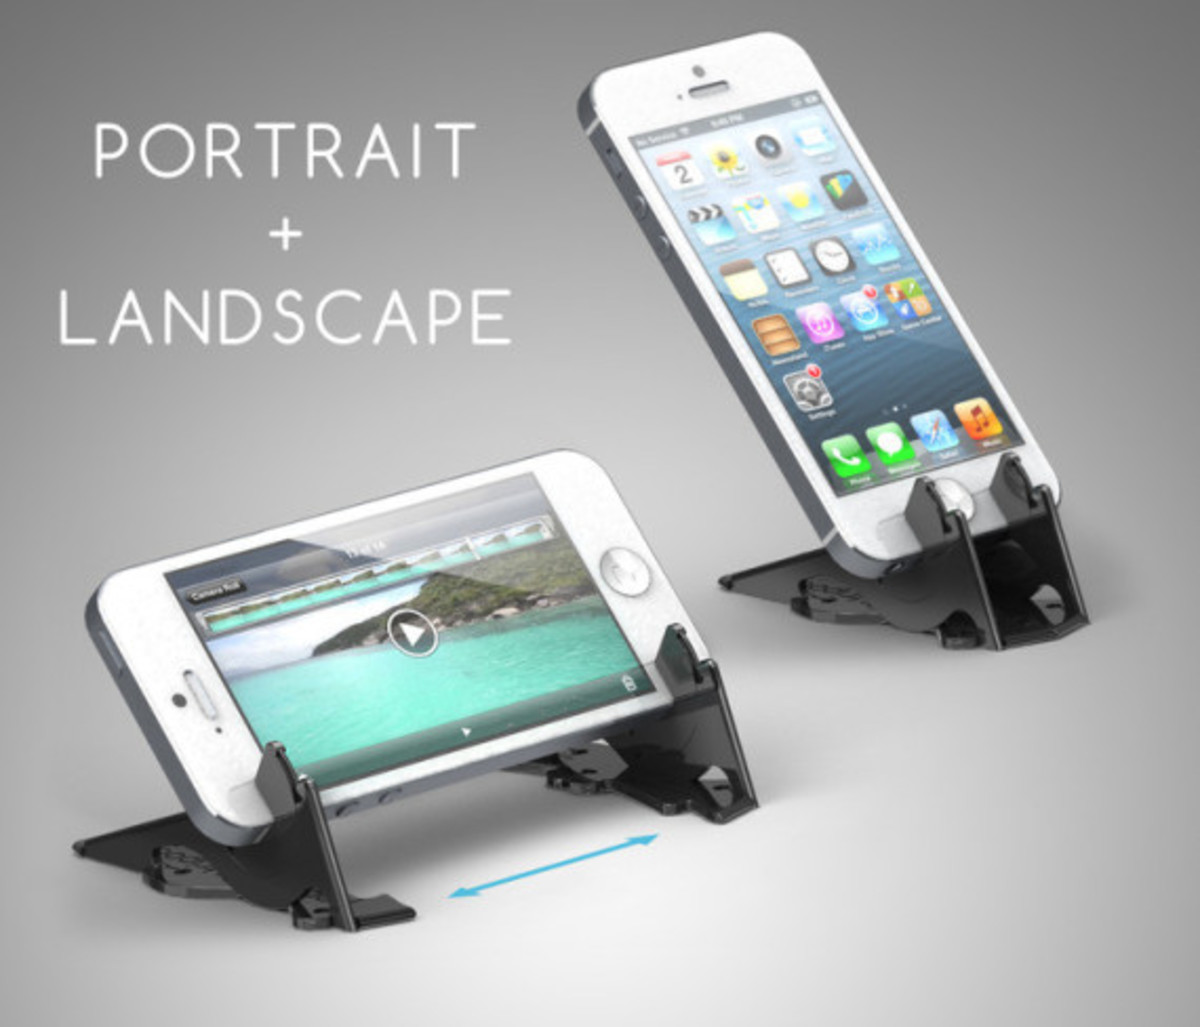 Pocket Tripod - Wallet-Sized Adjustable Stand for Apple iPhone - 2